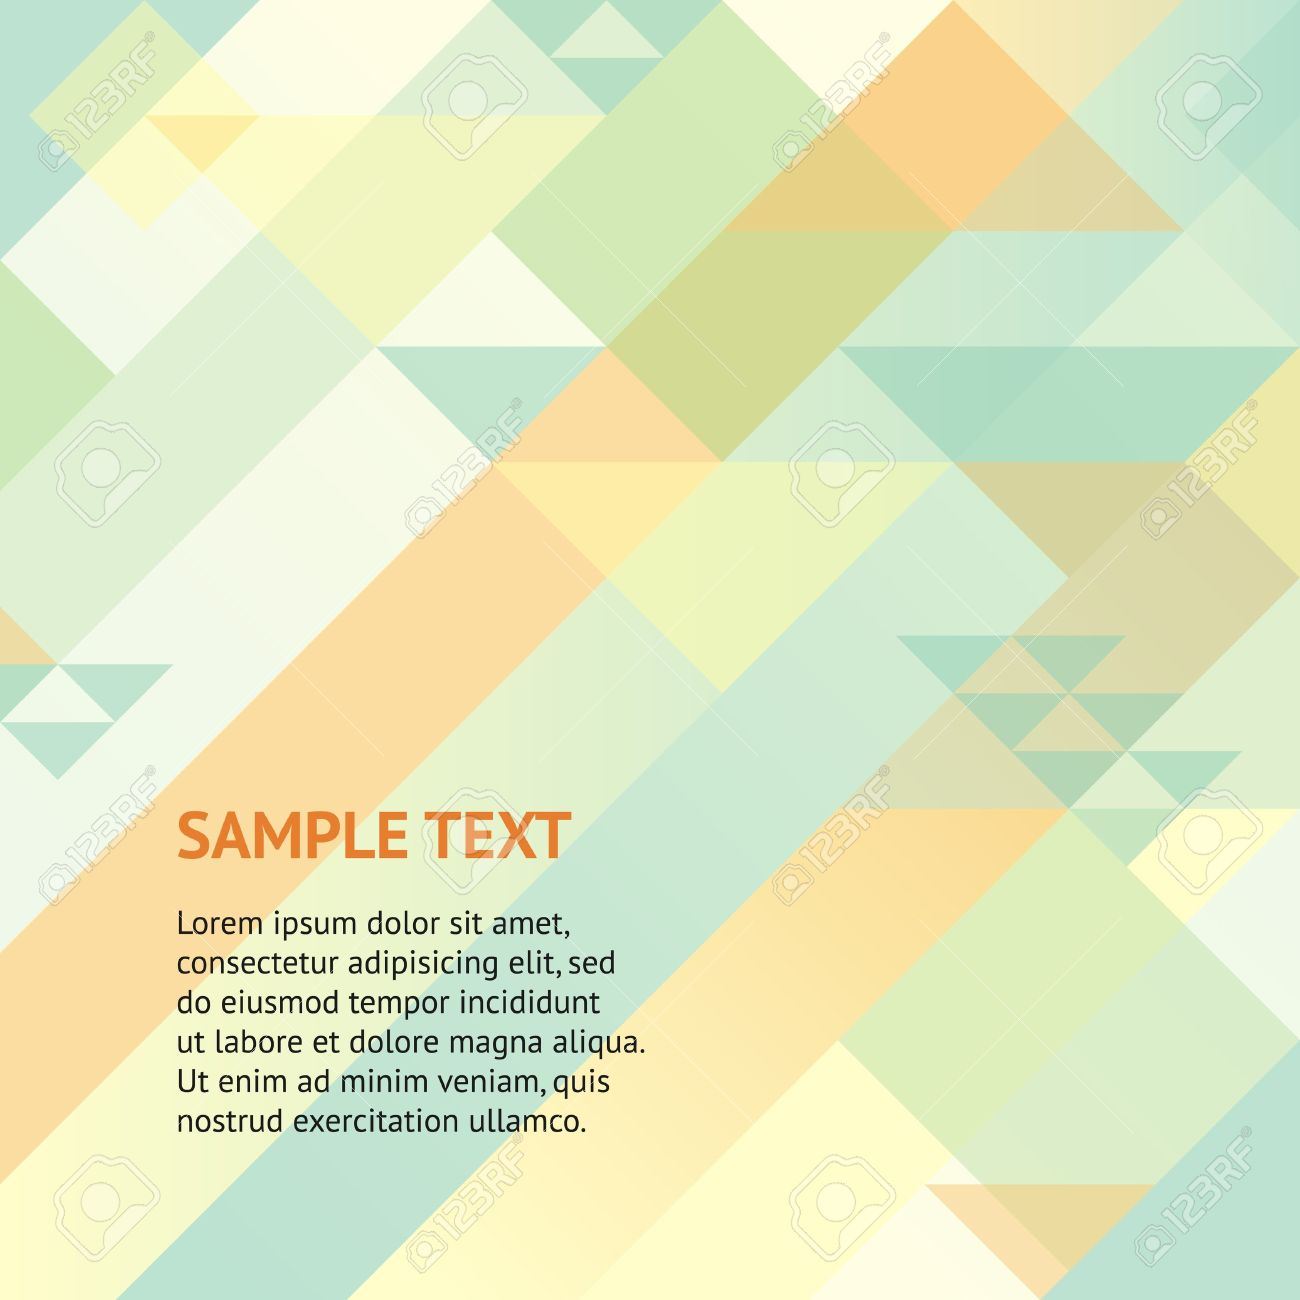 Abstract retro geometric background with triangles and space for your message  Design template for your presentation, brochure and etc Stock Vector - 17577017